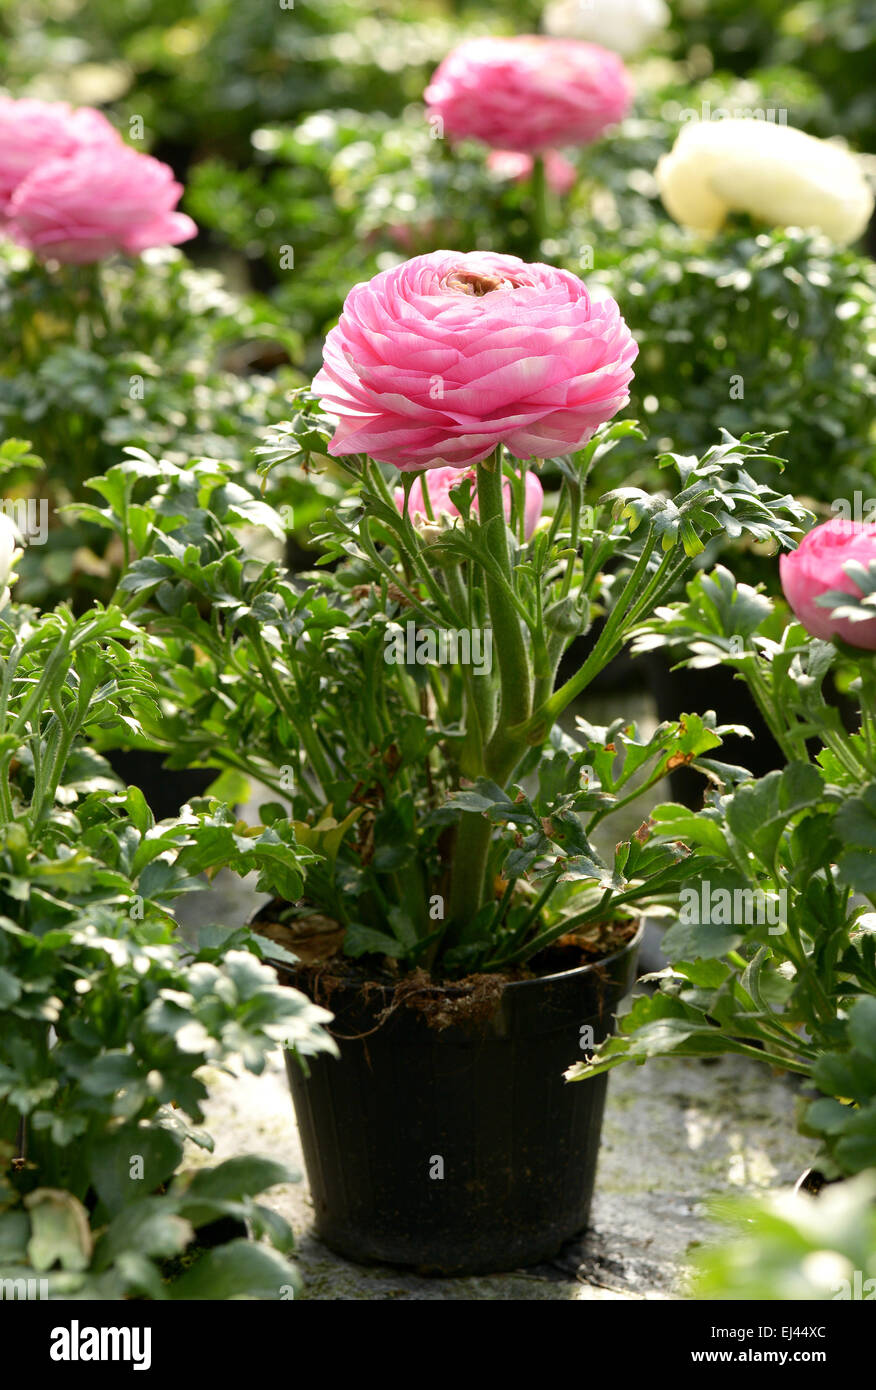 Potted pretty fresh pink buttercup or Ranunculus in a plastic flowerpot for sale at a nursery - Stock Image